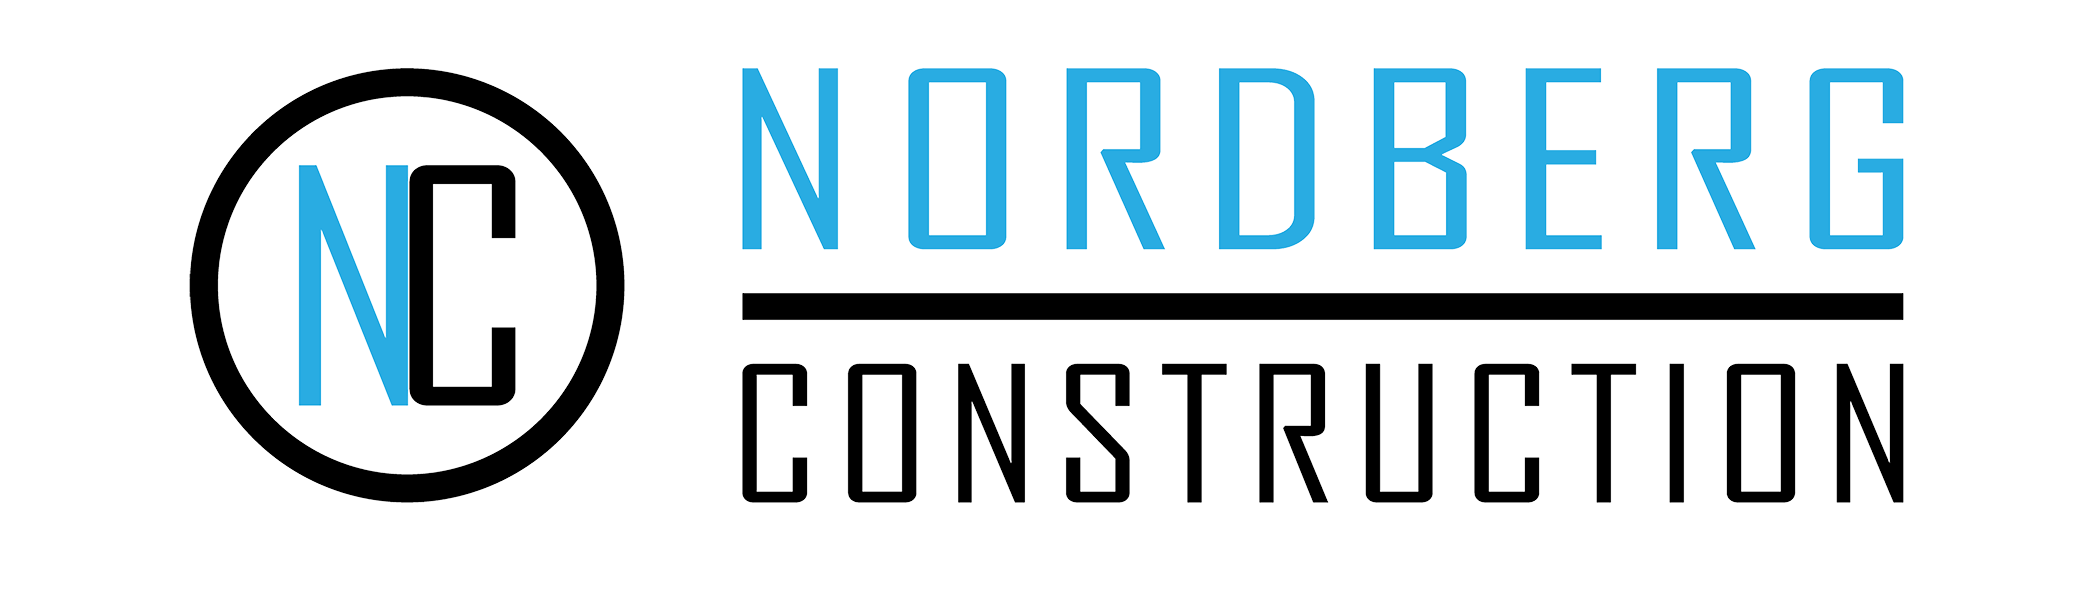 Nordberg Construction